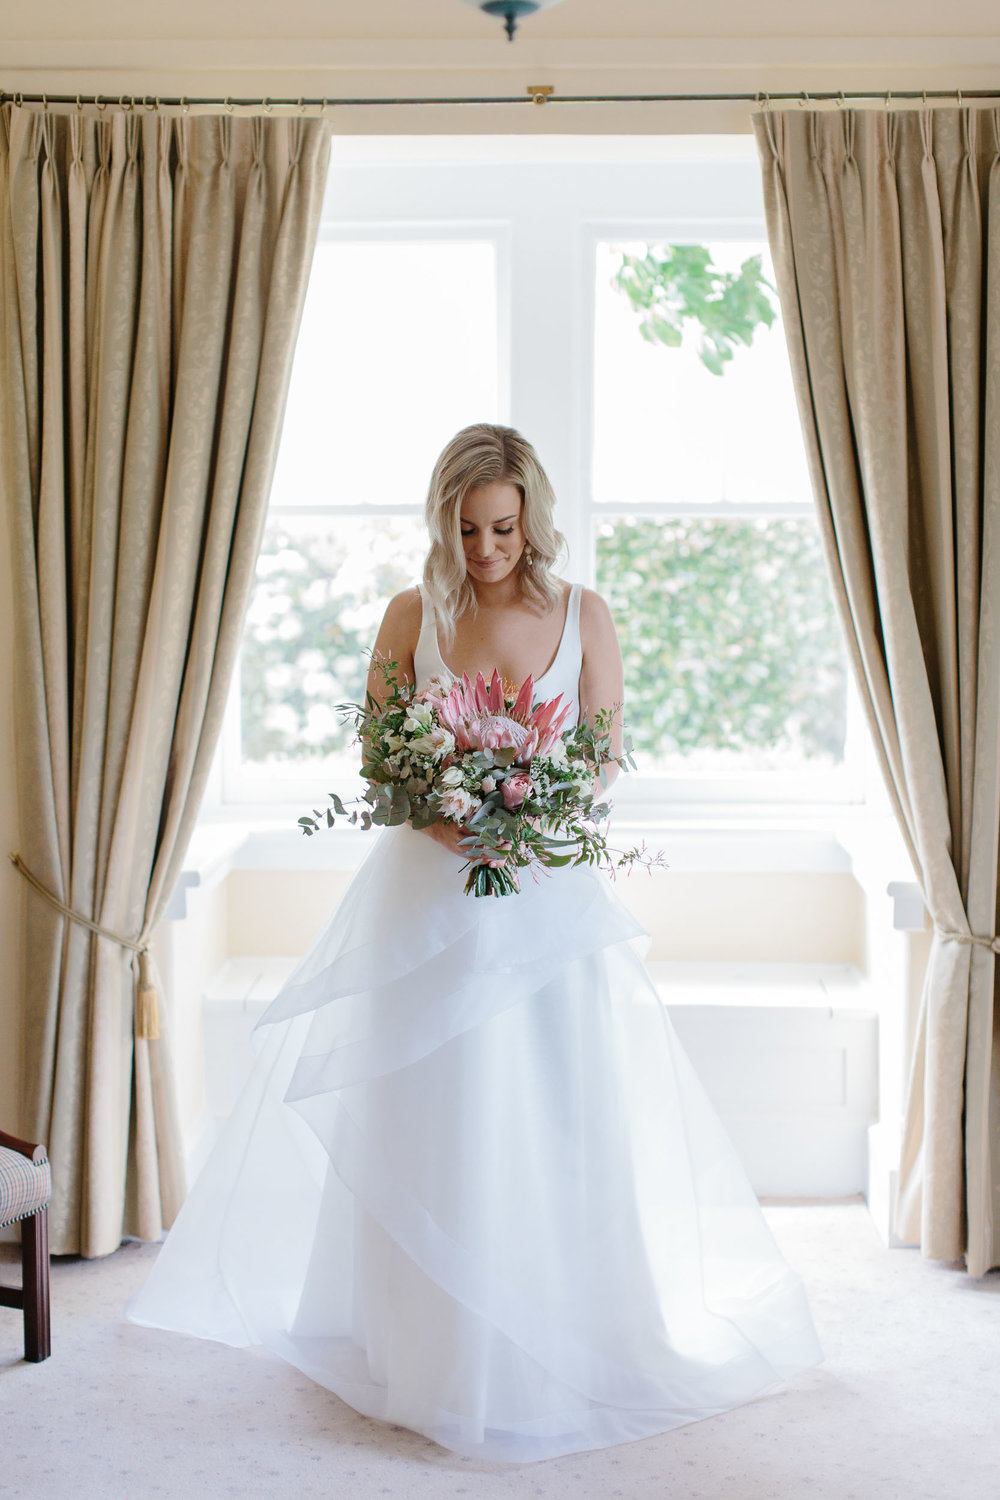 Kas-Richards-Wedding-Photographer-Country-Winery-Wedding-One-Day-Bridal-Gown-26.jpg